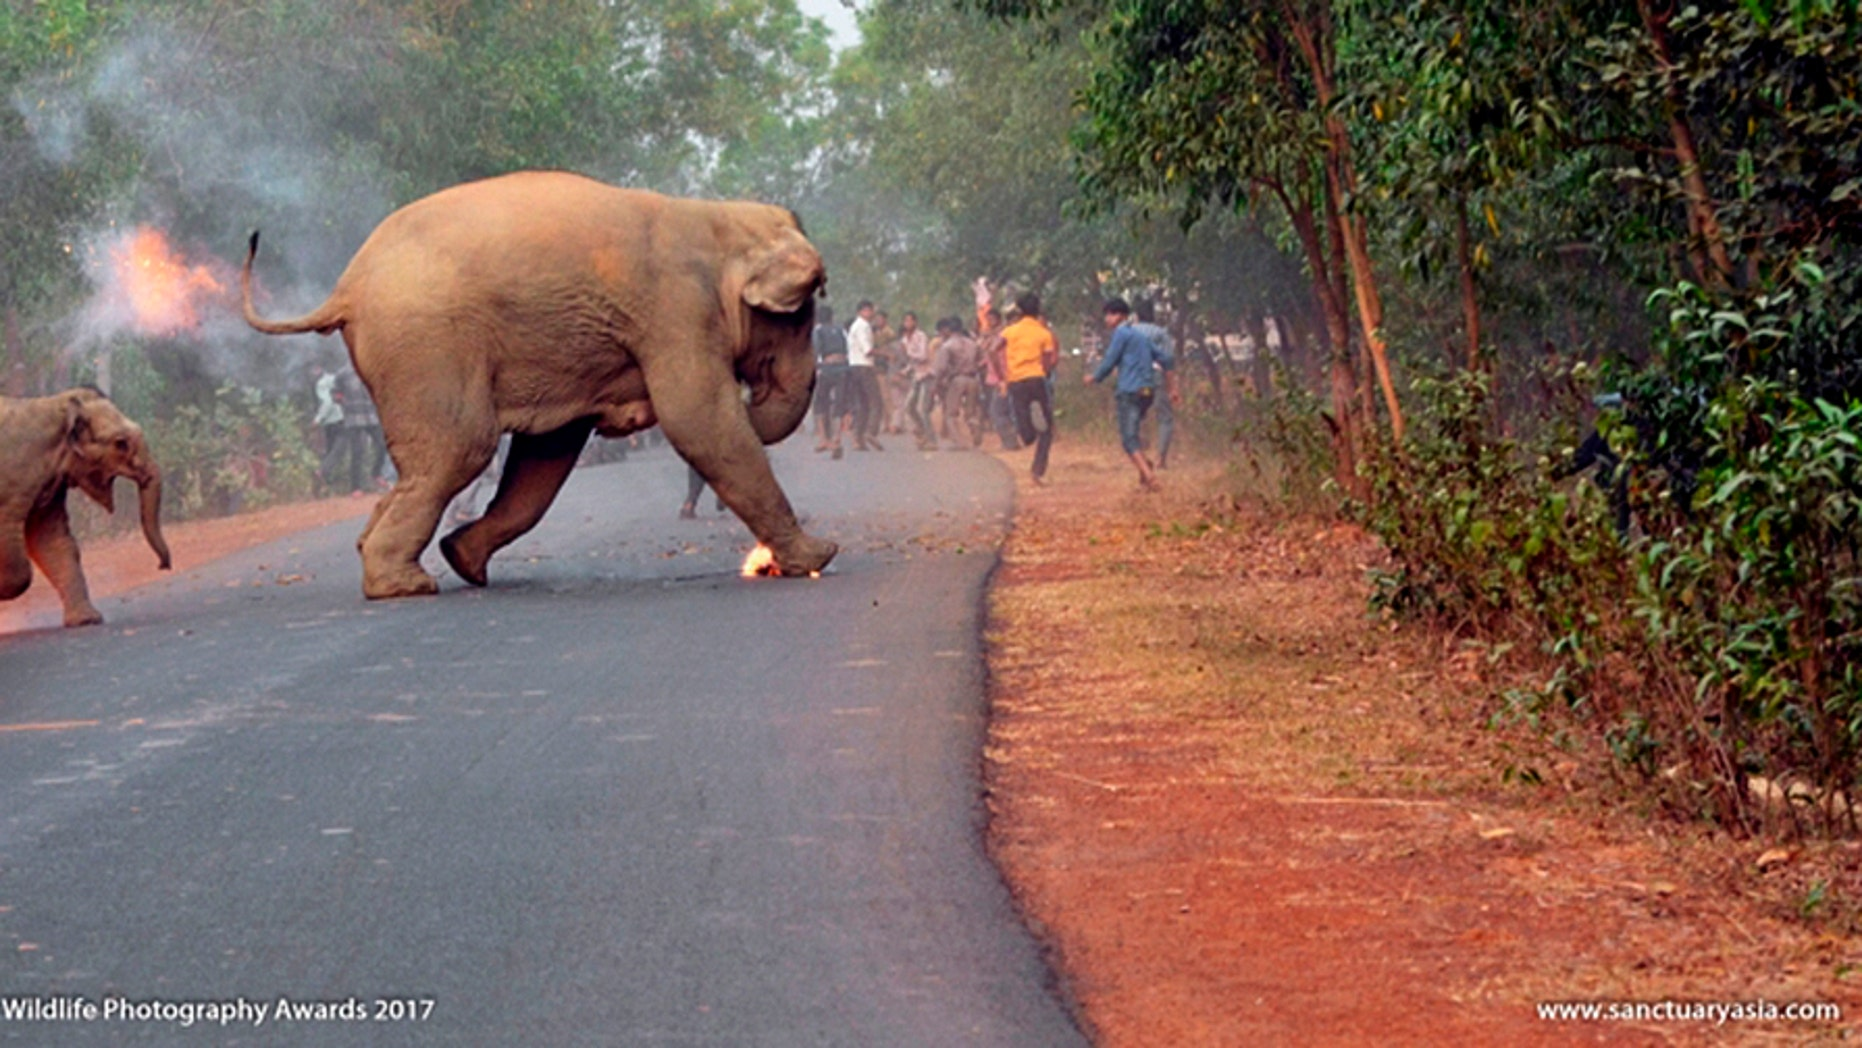 An award-winning image shows the moment two elephants had to run for their lives.